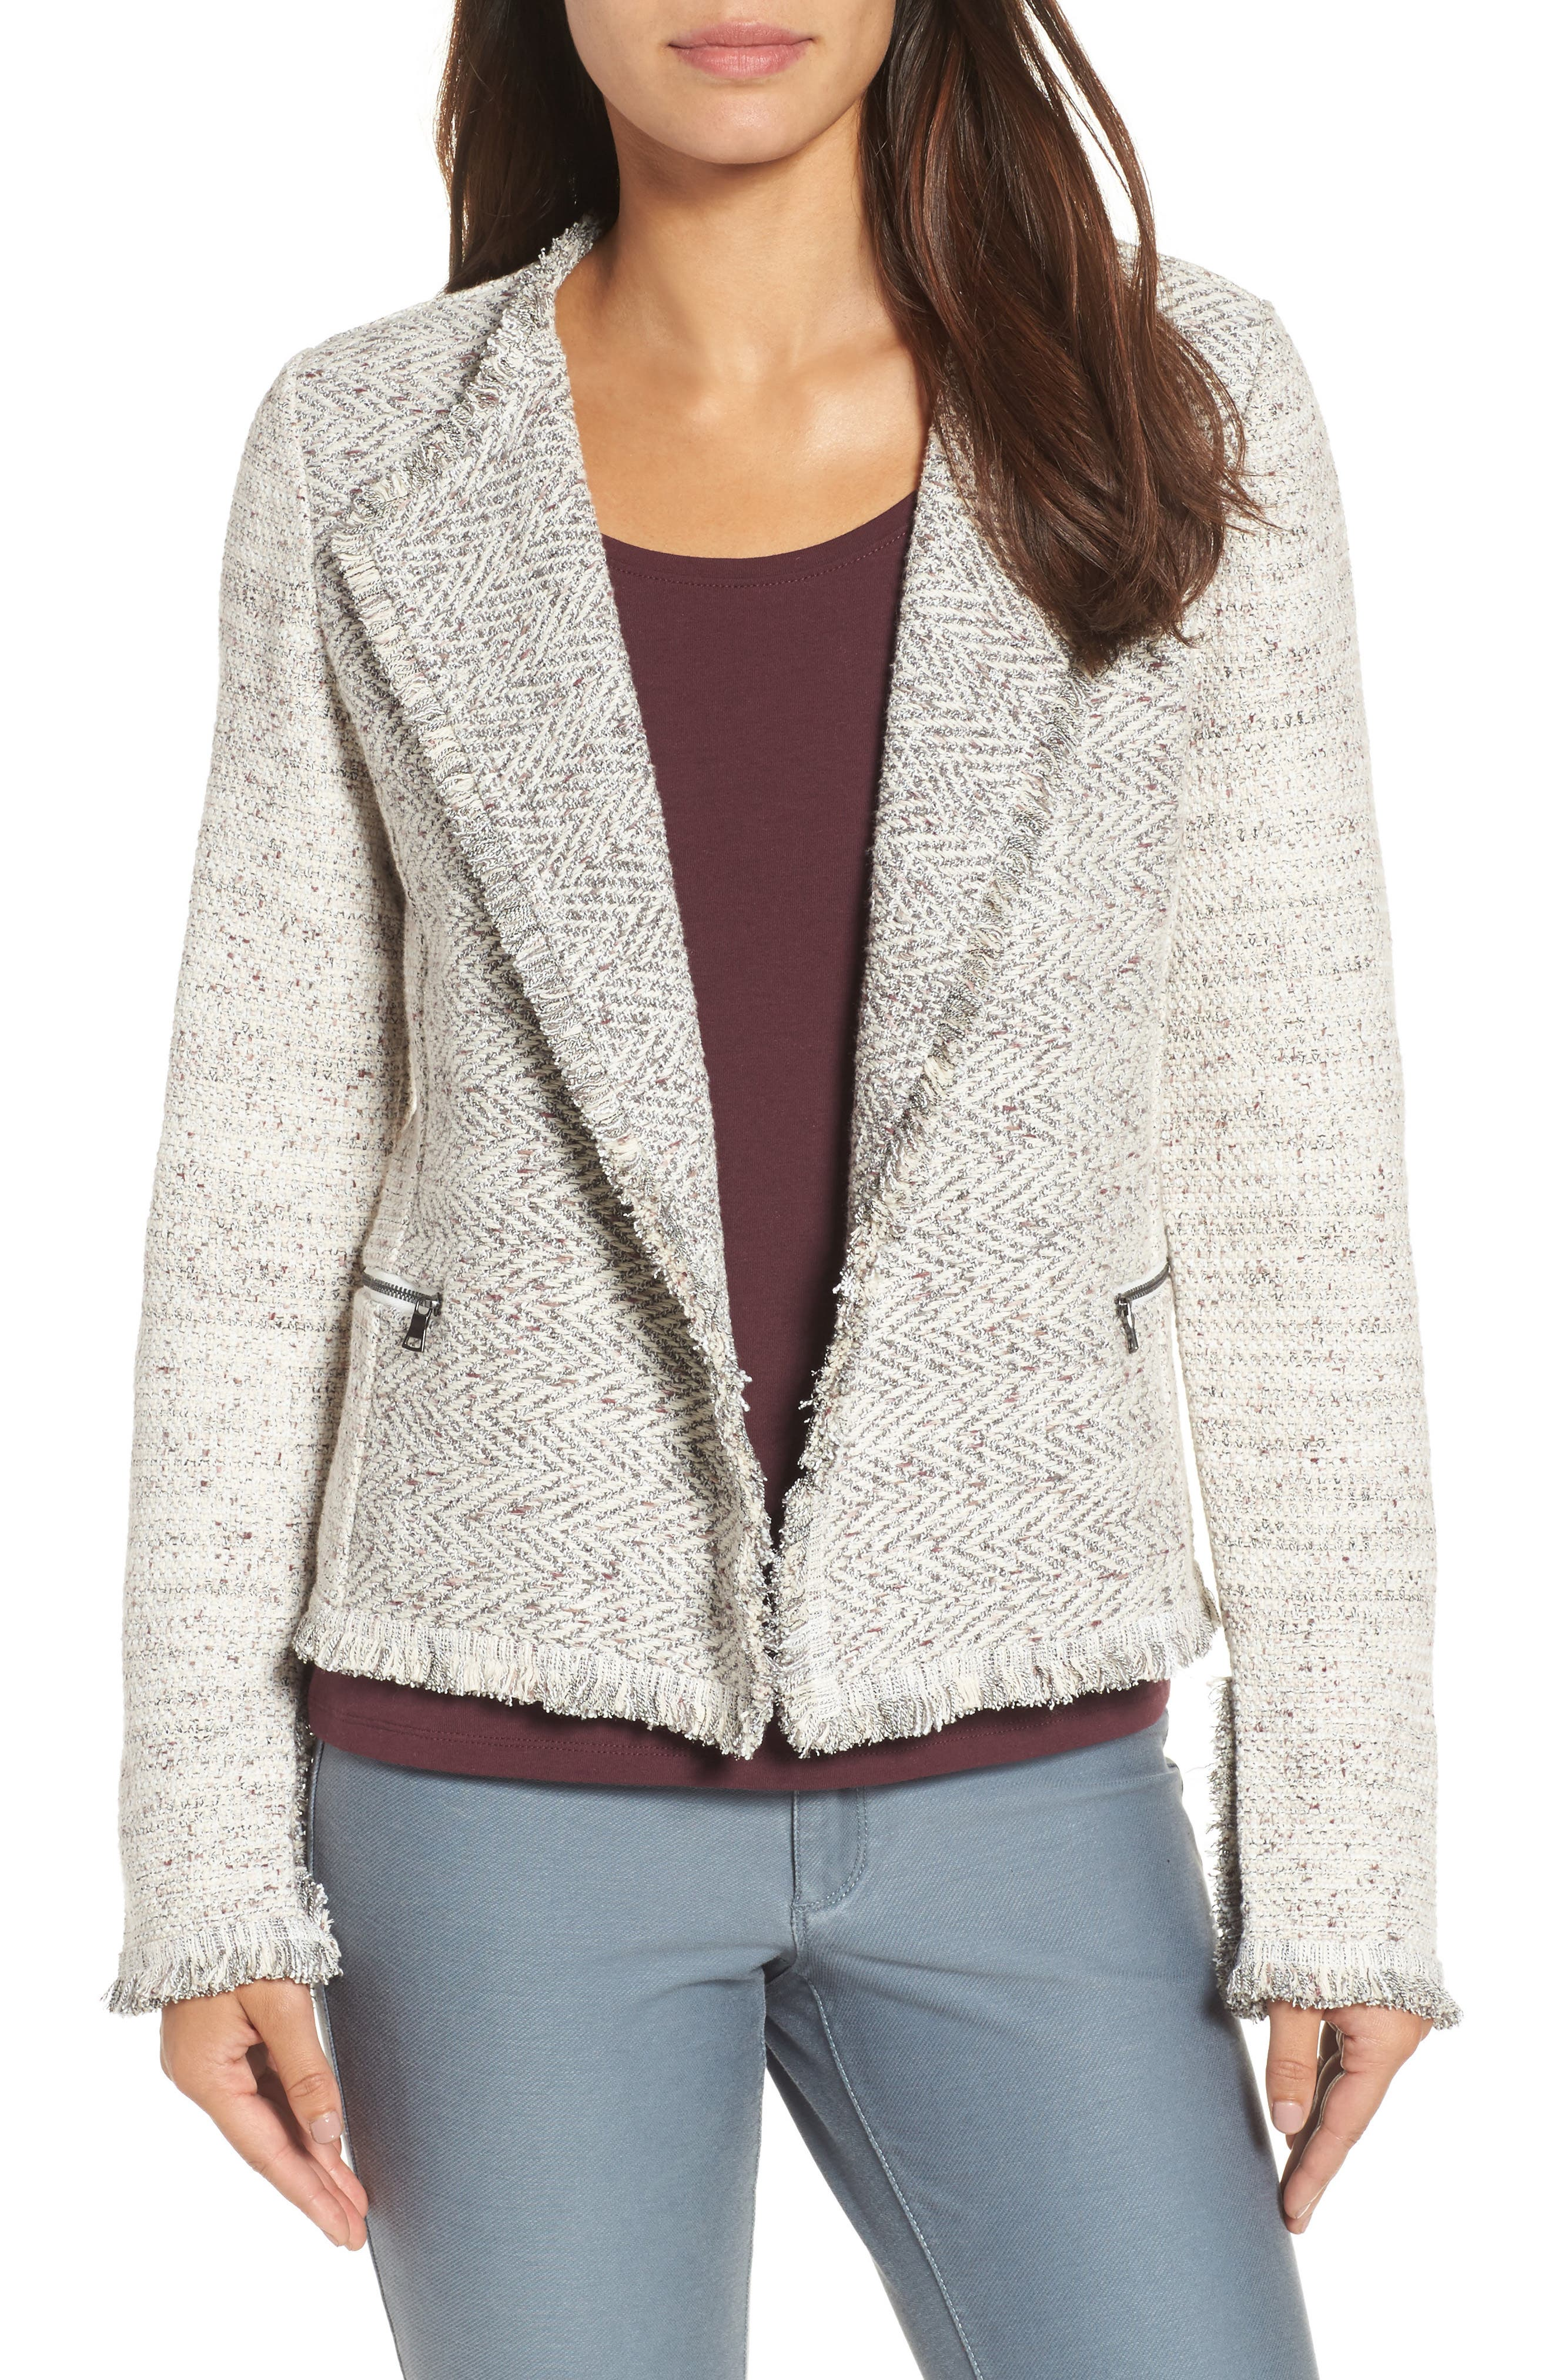 Chilled Tweed Jacket,                         Main,                         color, 090